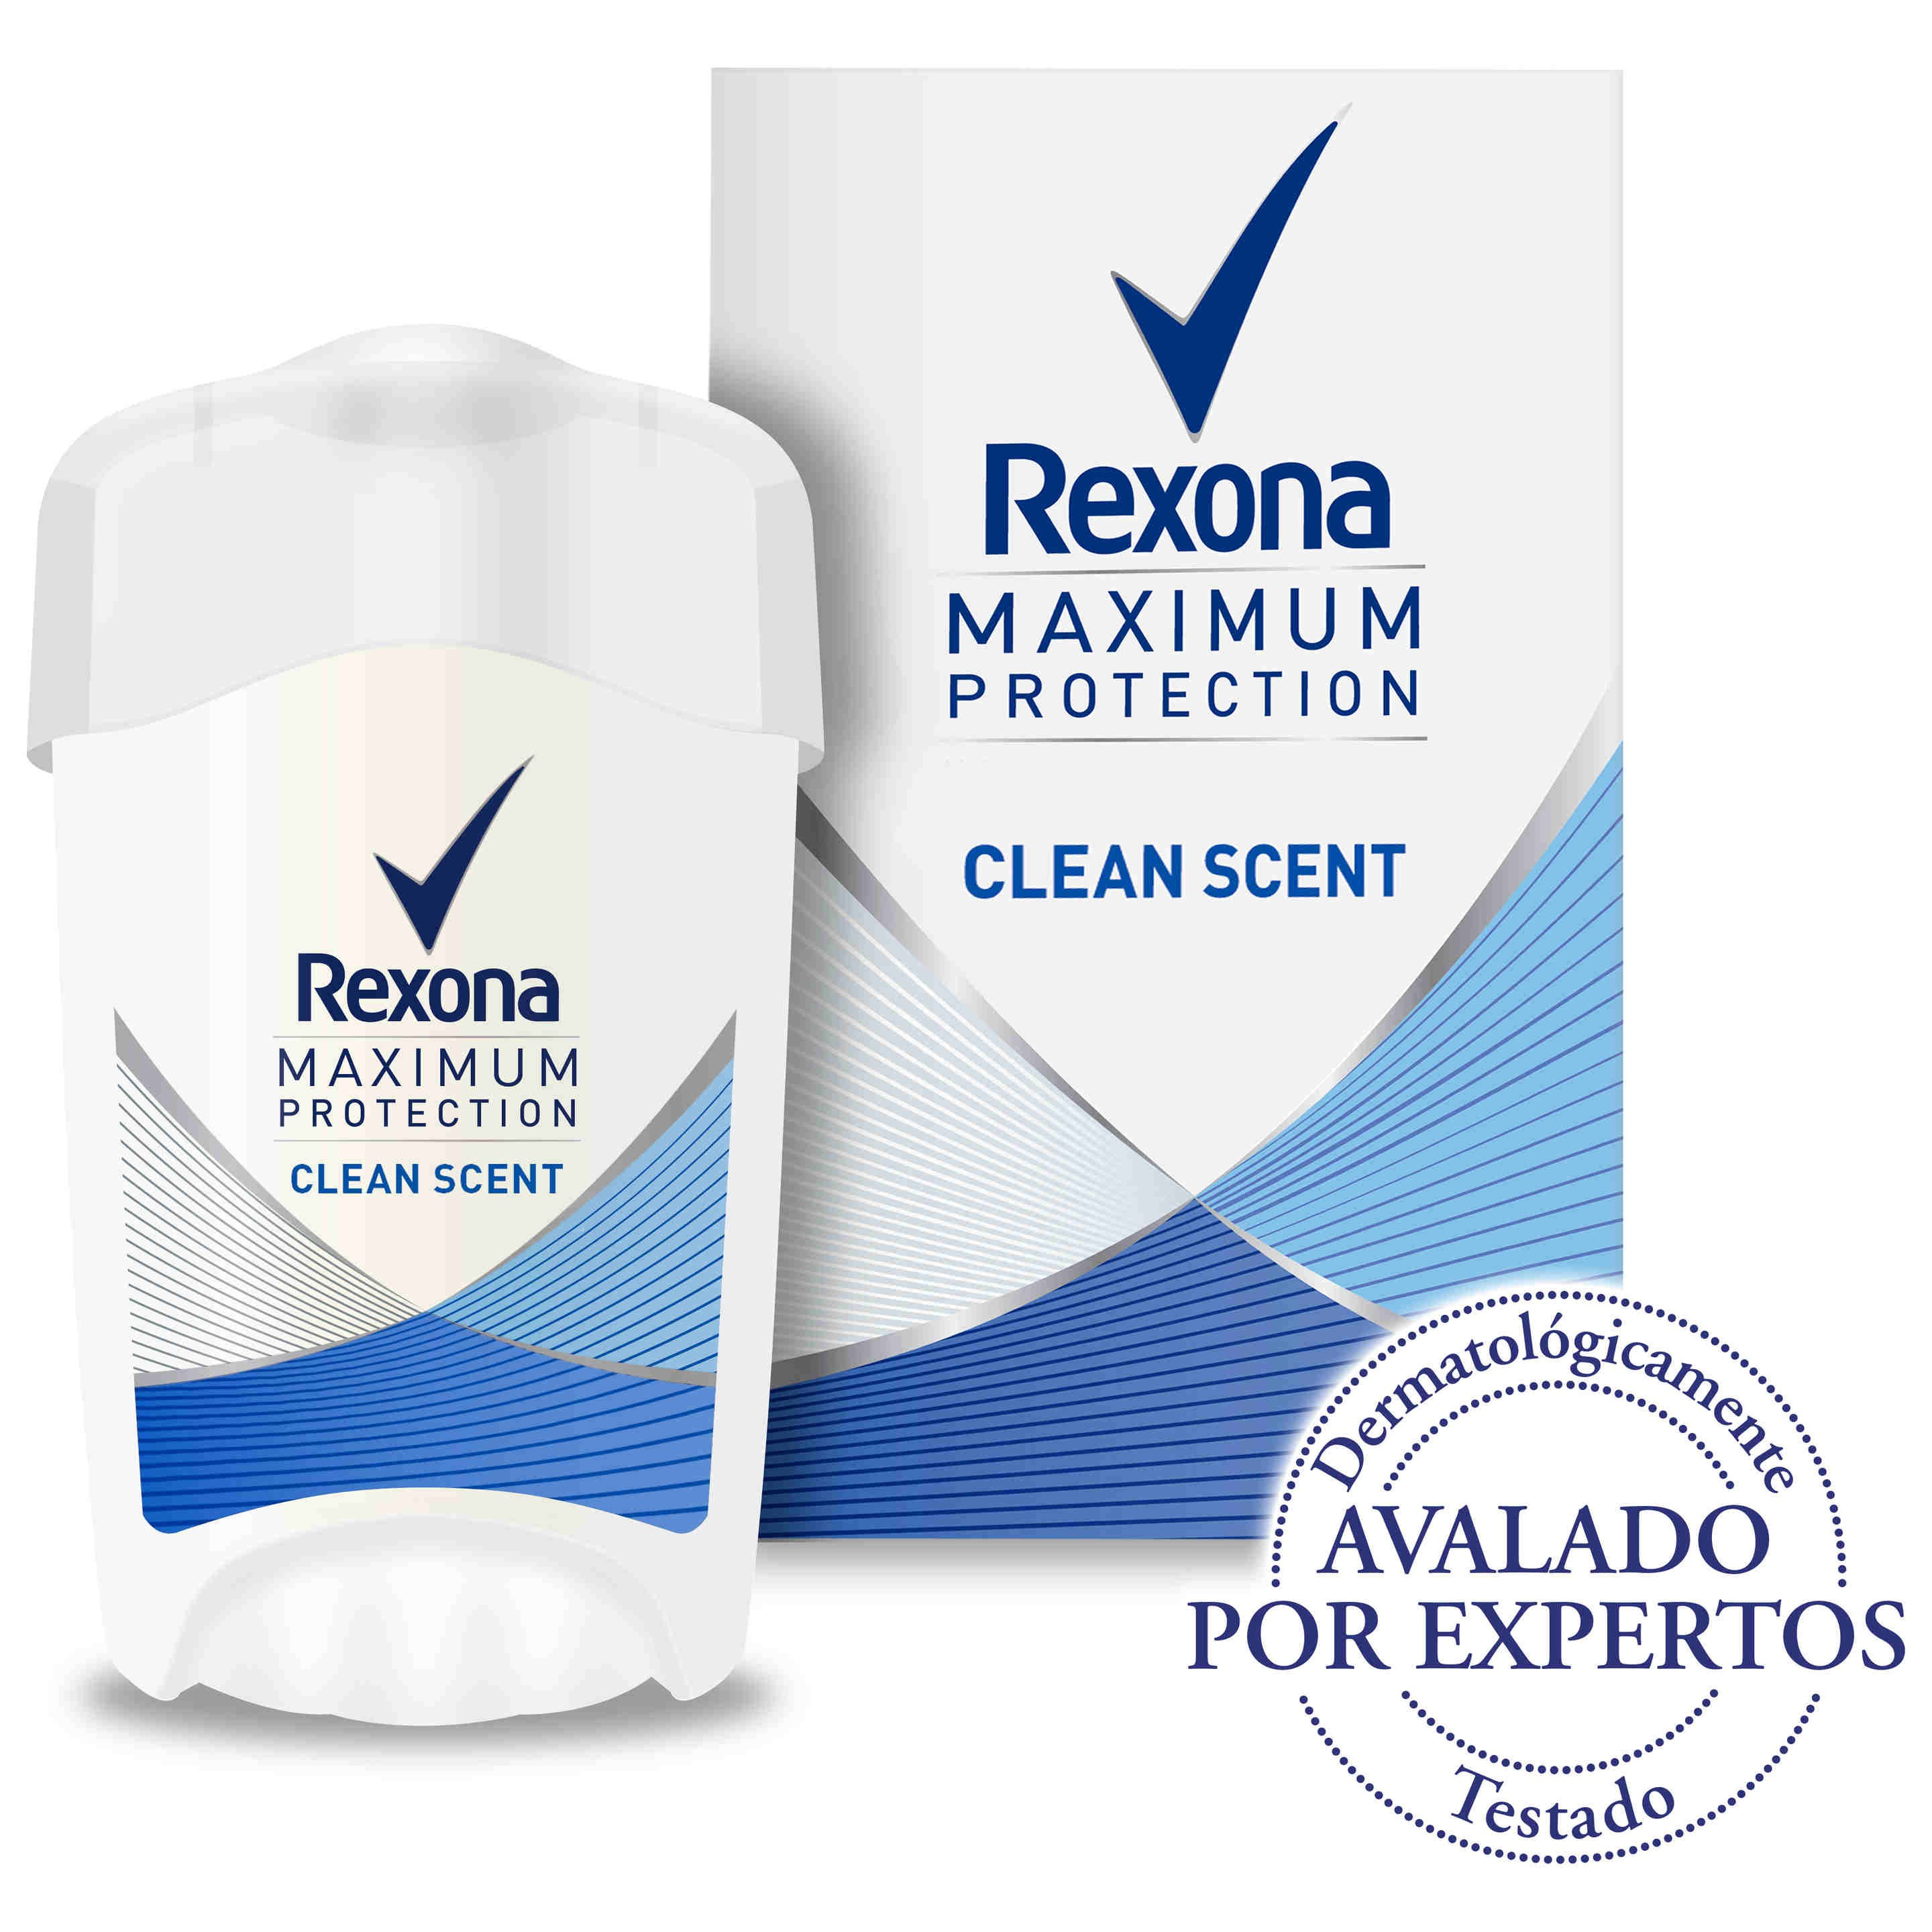 Rexona women maximum protection desodorante en crema clean fresh scent envase de 45ml.